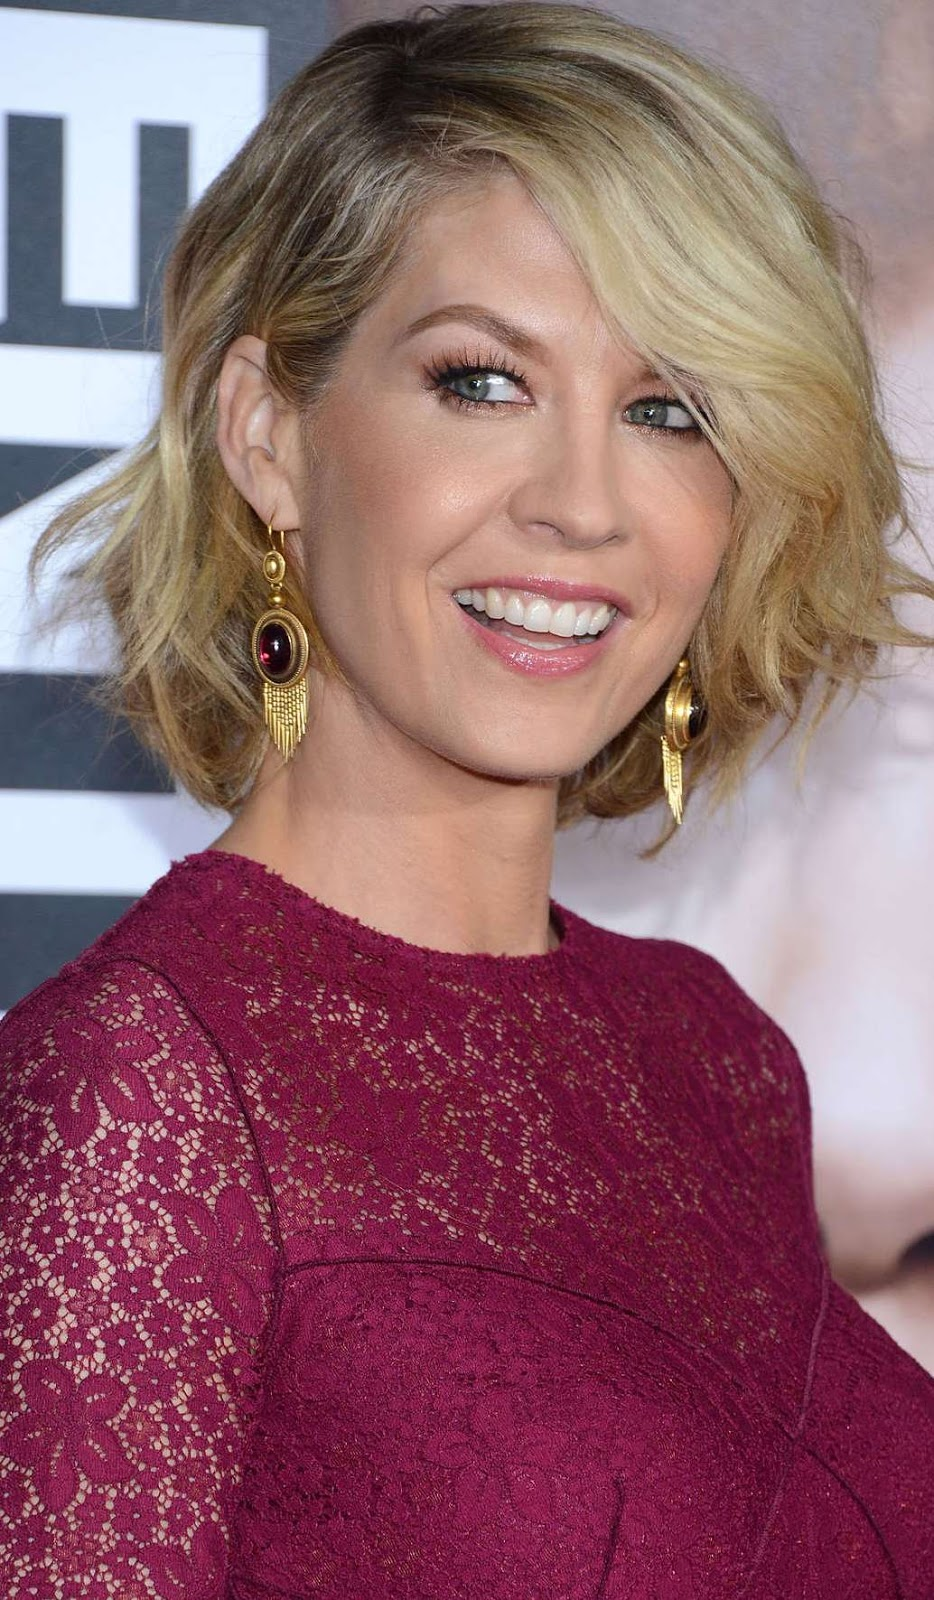 Discussion on this topic: Amy O'Neill, jenna-elfman-born-september-30-1971-age/